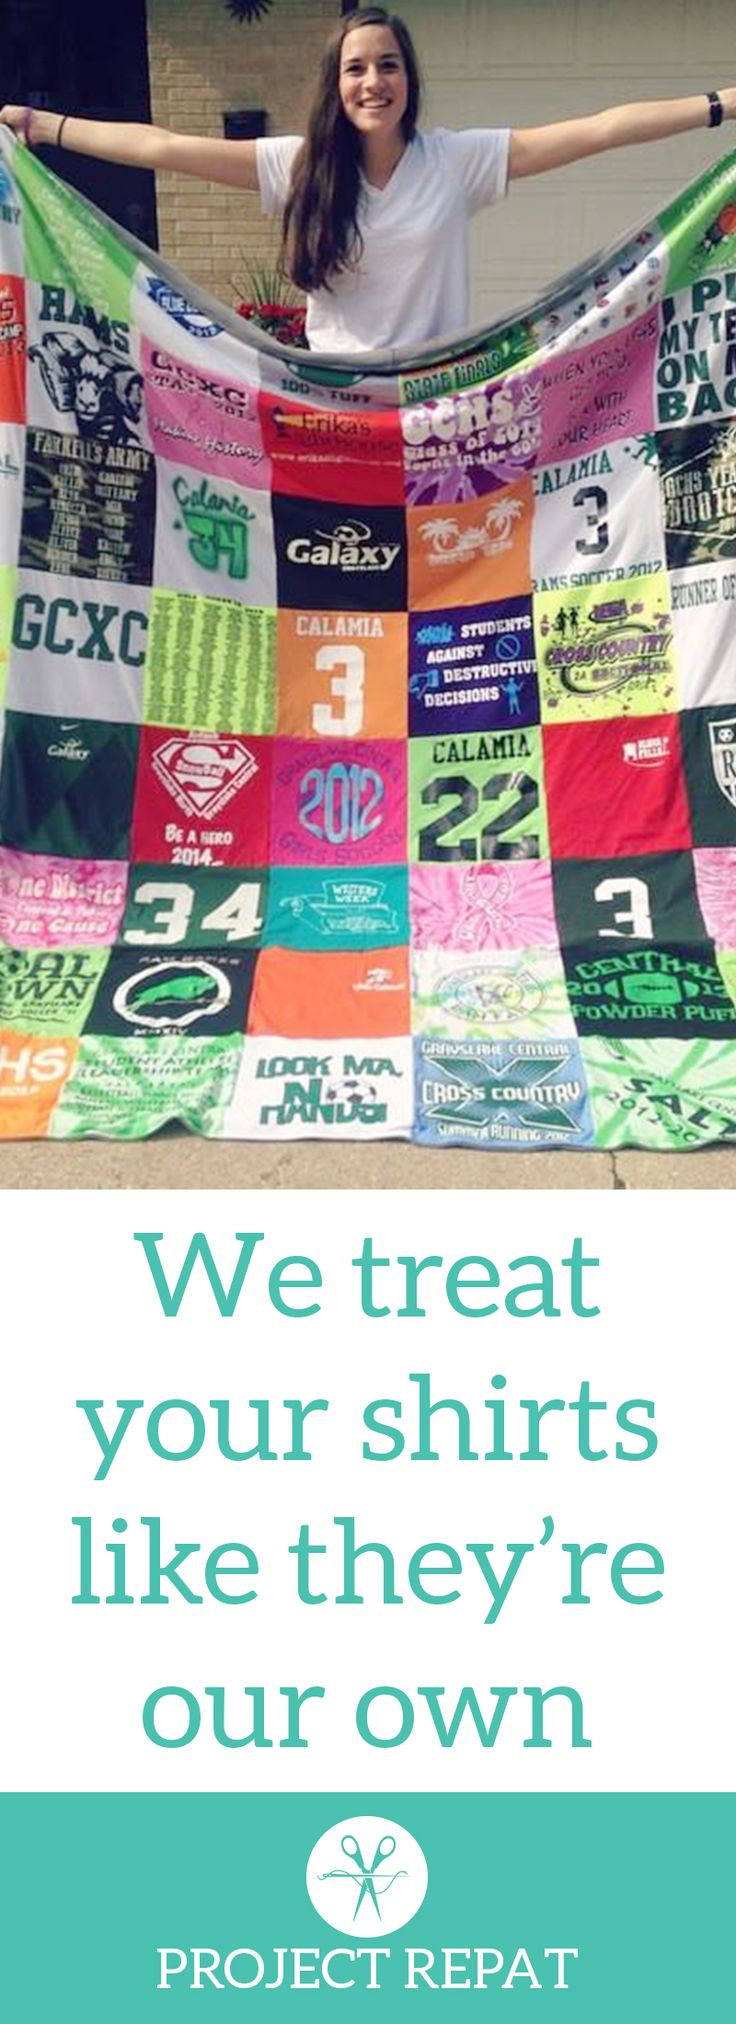 Every t-shirt quilt has a unique story to tell — what will yours say? Learn more about how you can turn t-shirts into a great conversation starter with Project Repat. https://www.projectrepat.com/?utm_source=Pinterest&utm_medium=3.1P